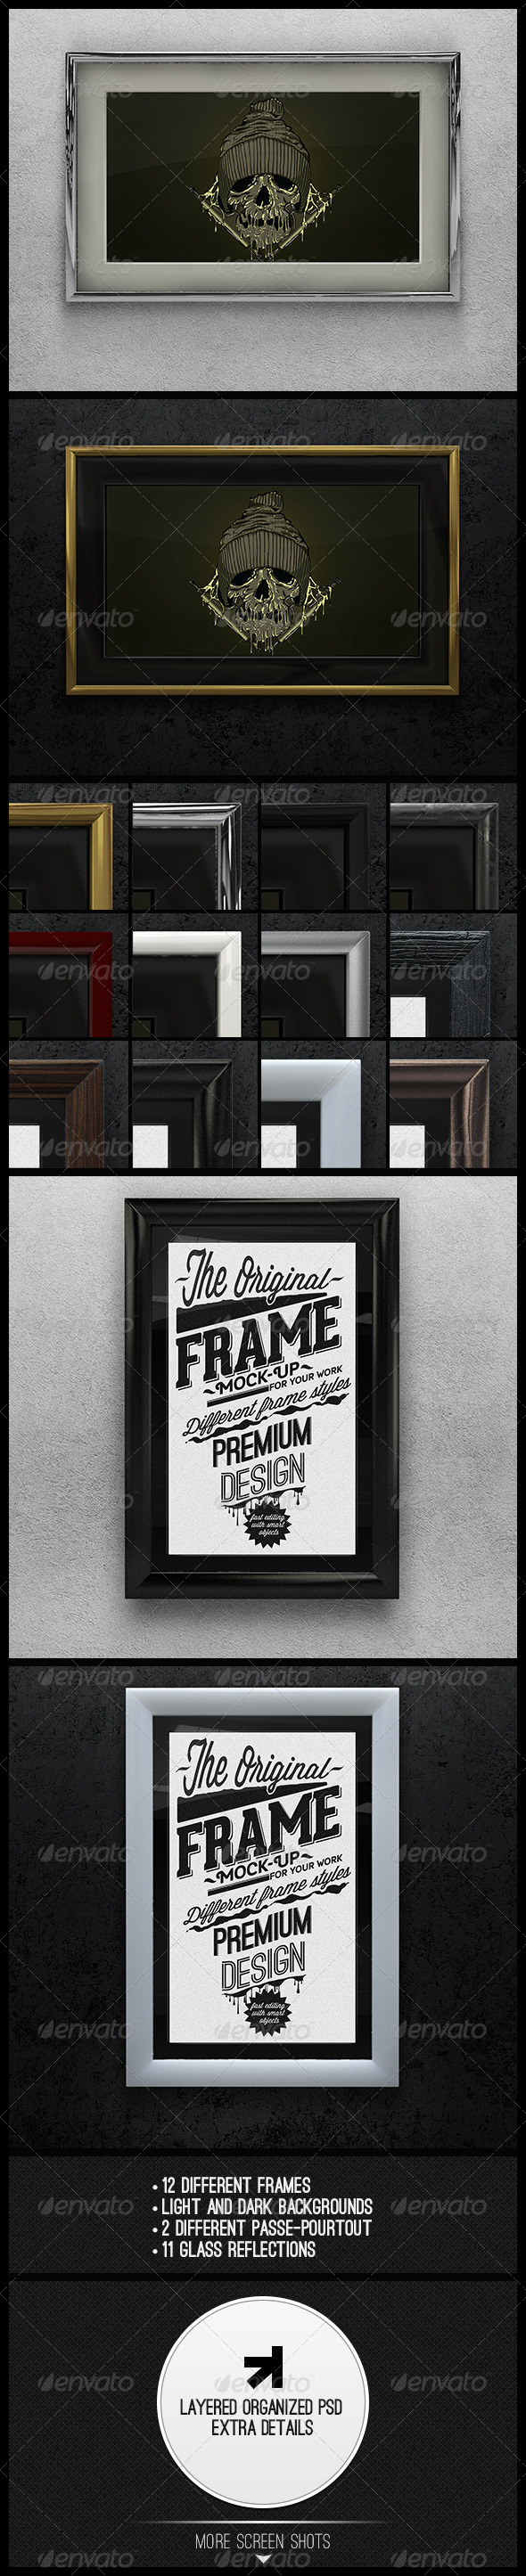 GraphicRiver Artwork Frame Mock-up 5321491